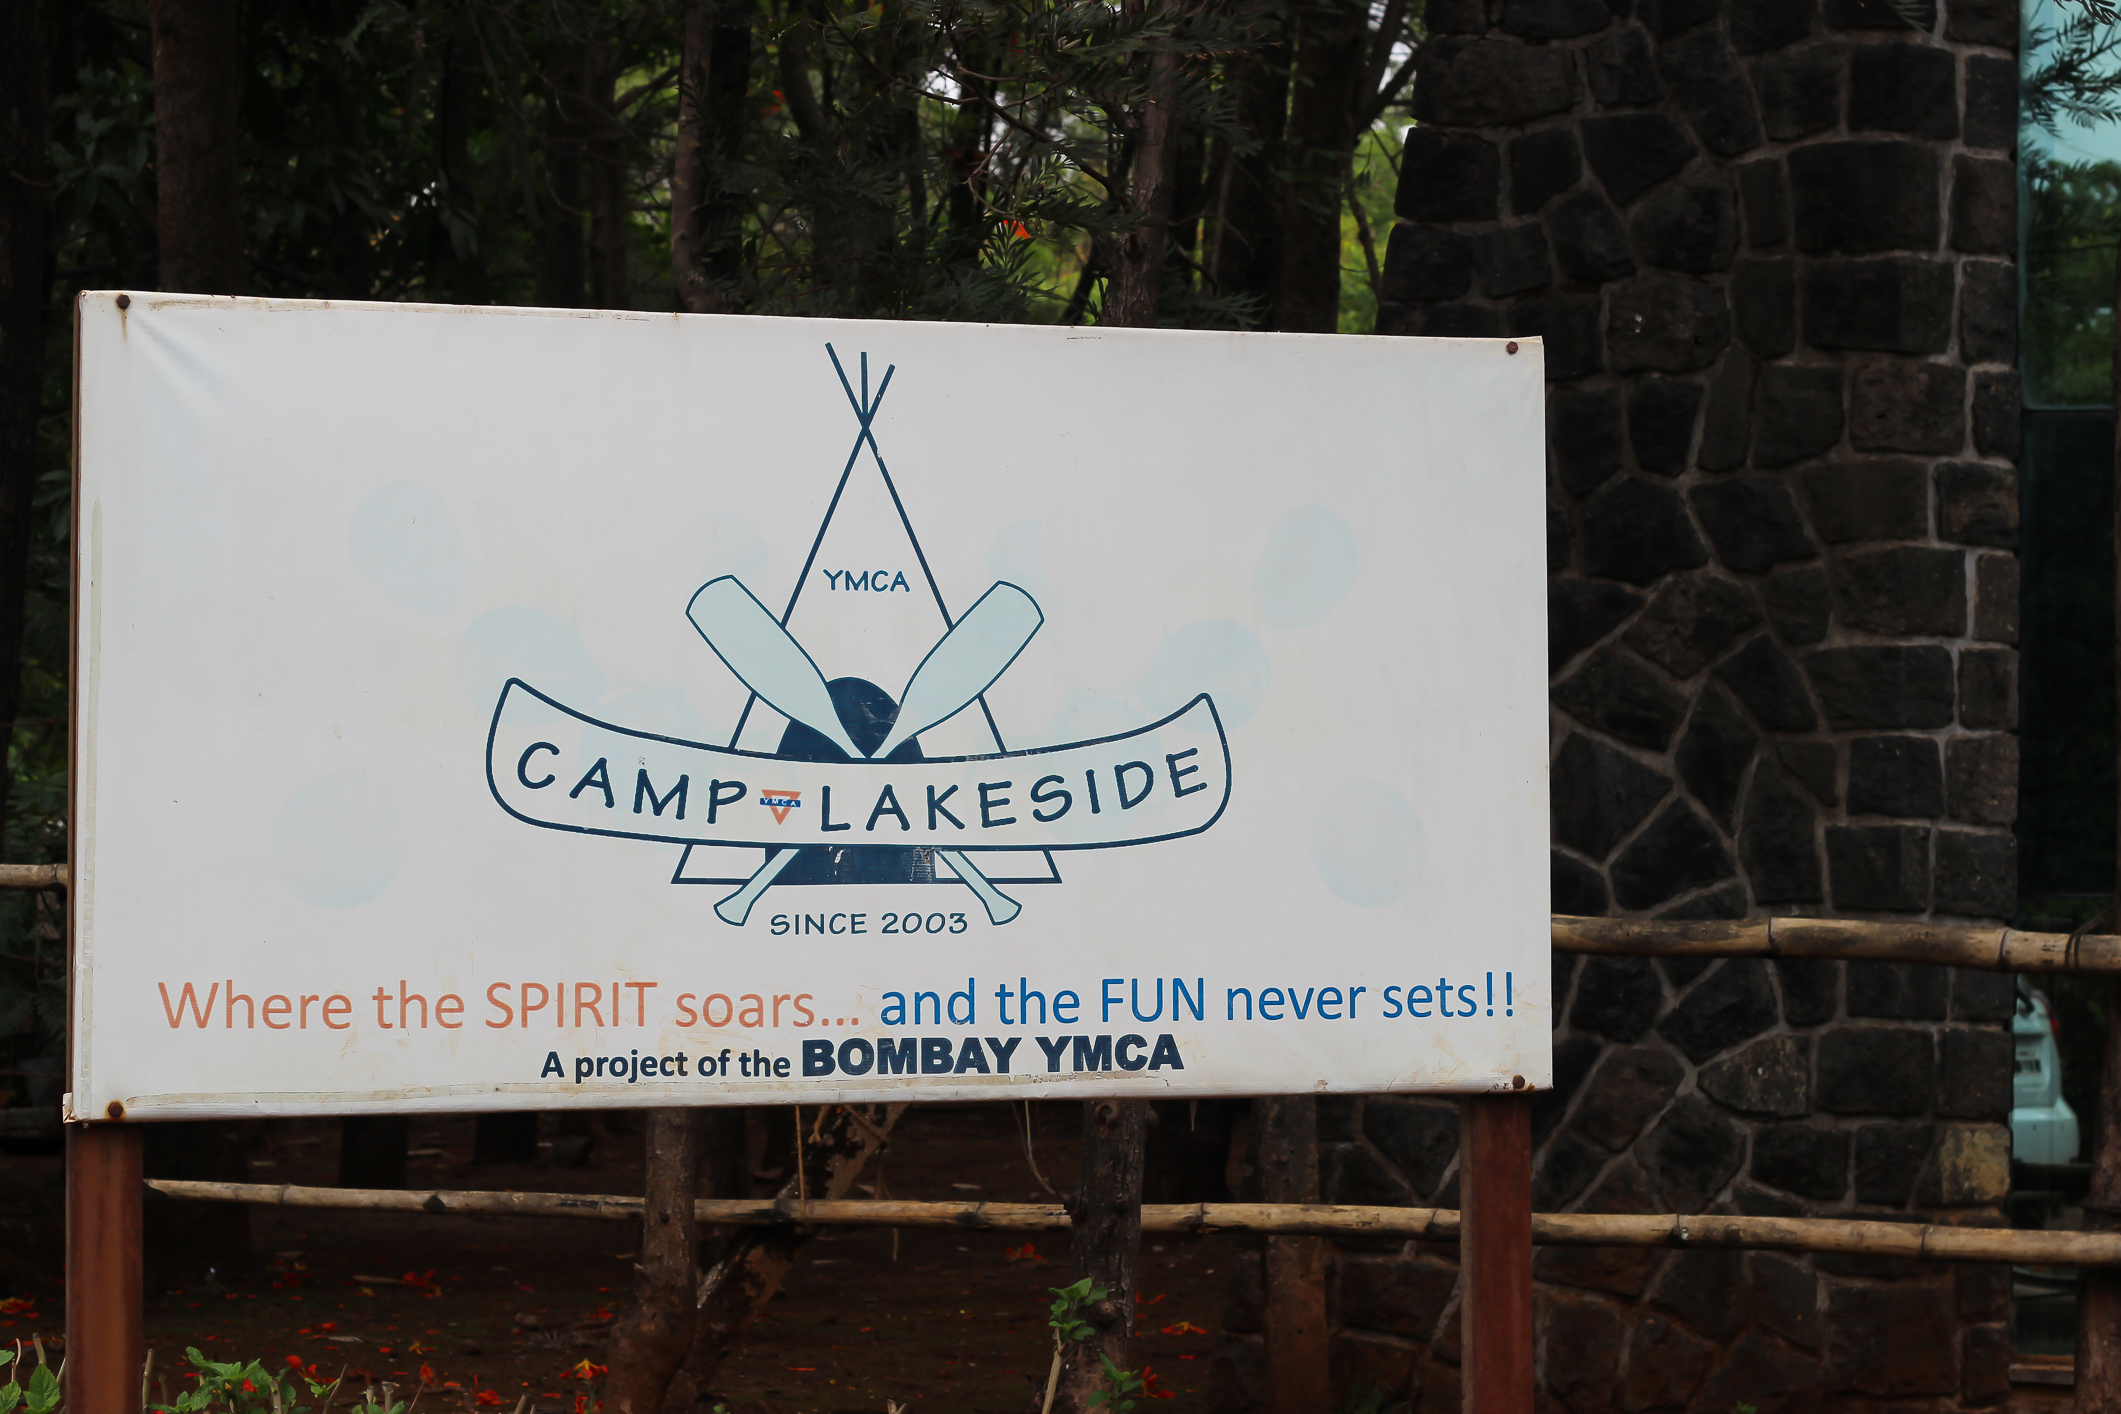 YMCA Nilshi Camp Lakeside